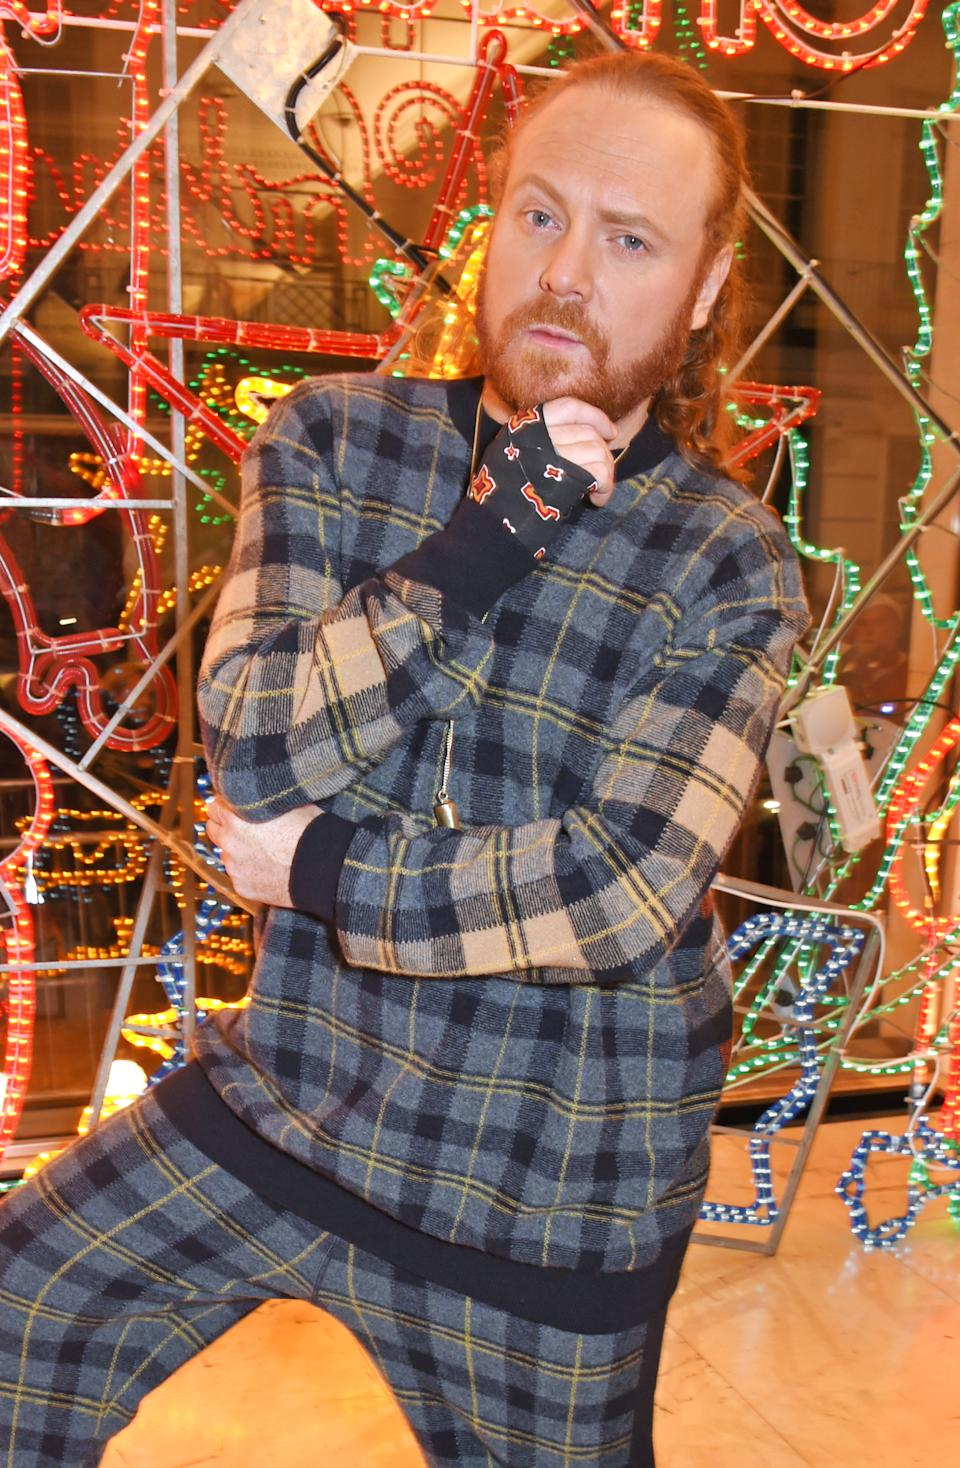 Leigh Francis aka Keith Lemon attend the Stella McCartney Christmas Lights 2017 party on December 6, 2017 in London, England.  (Photo by David M. Benett/Dave Benett/Getty Images for Stella McCartney)